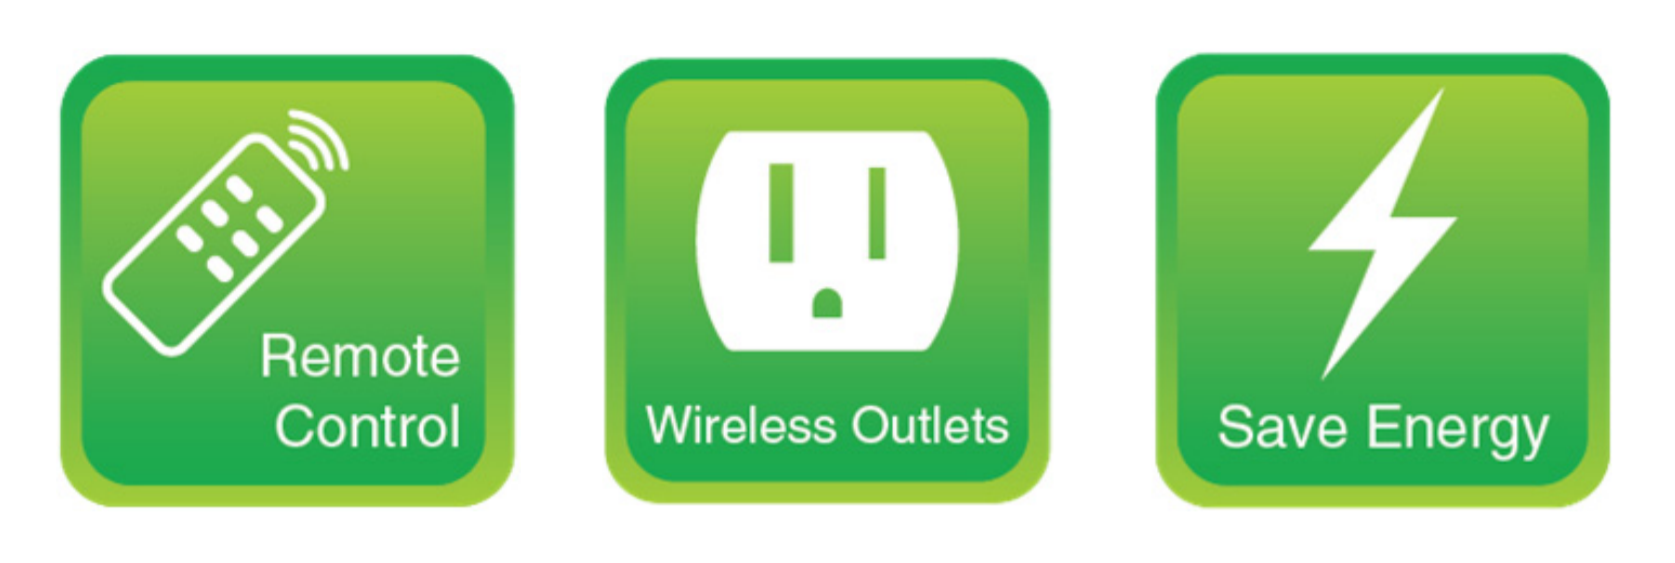 Seco-Larm Enforcer CBA Wireless Outlet Icons